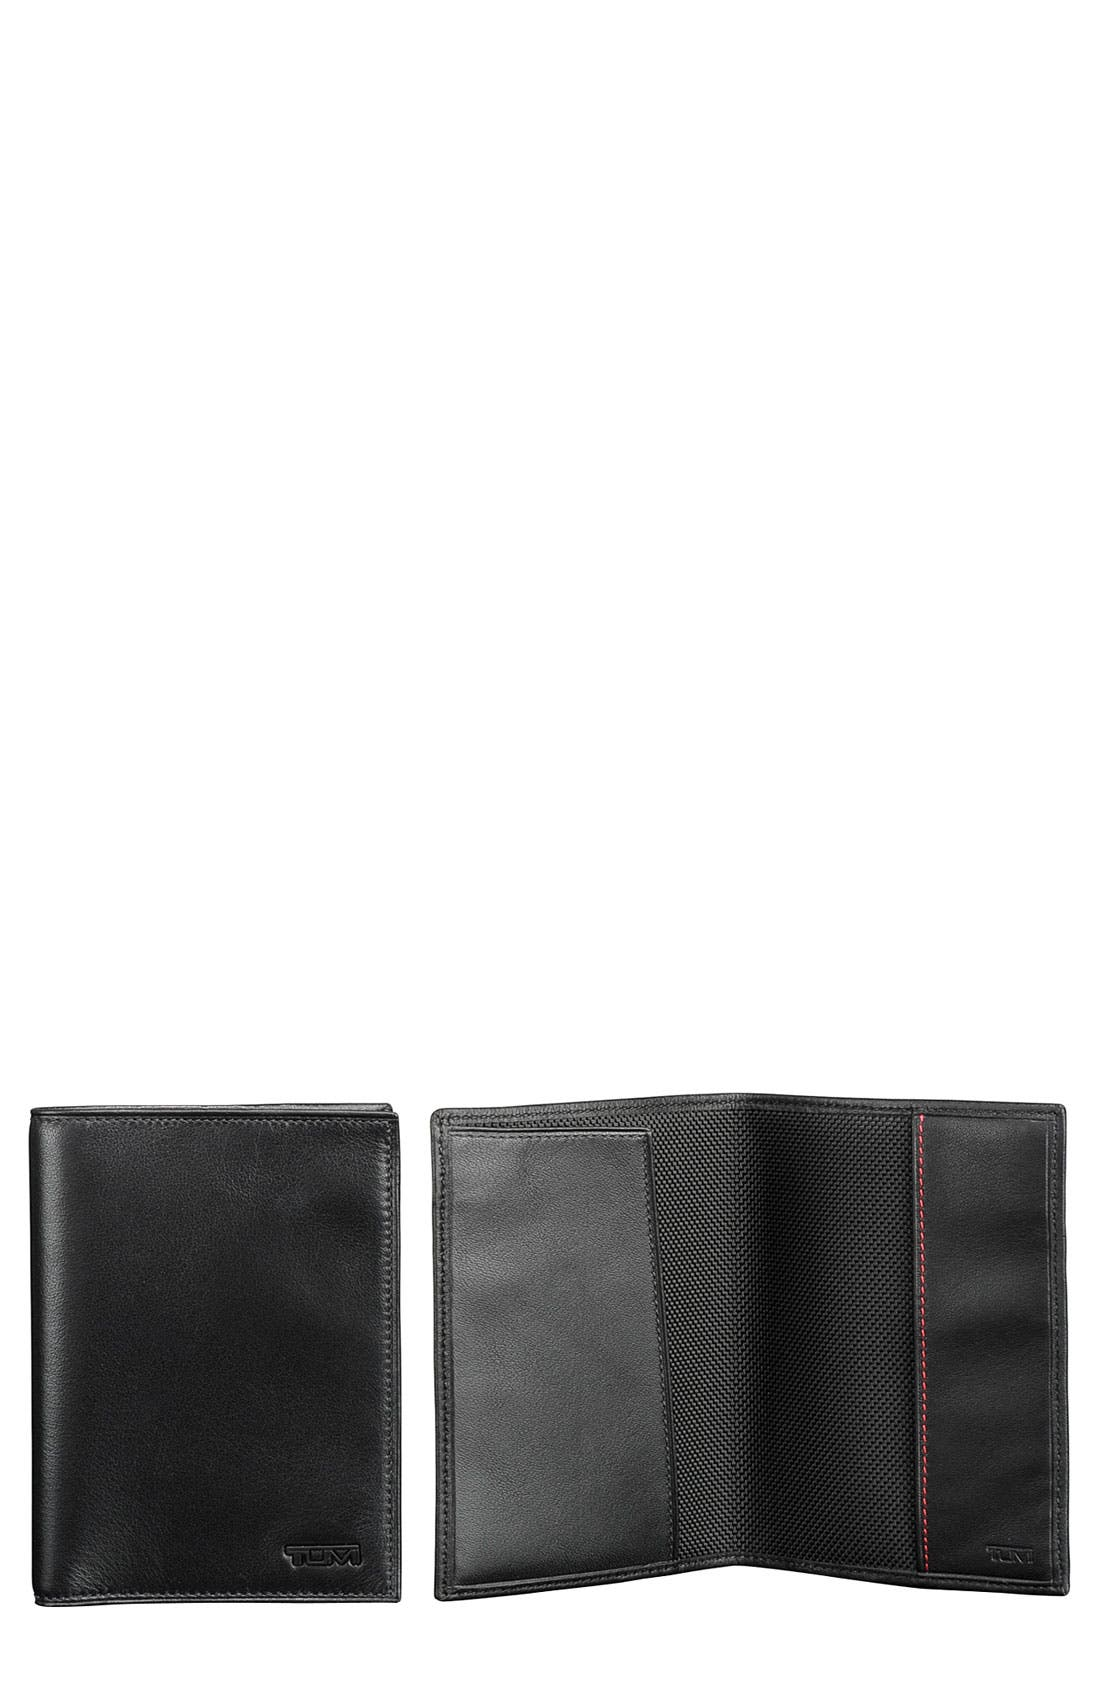 Main Image - Tumi 'Delta' Passport Cover